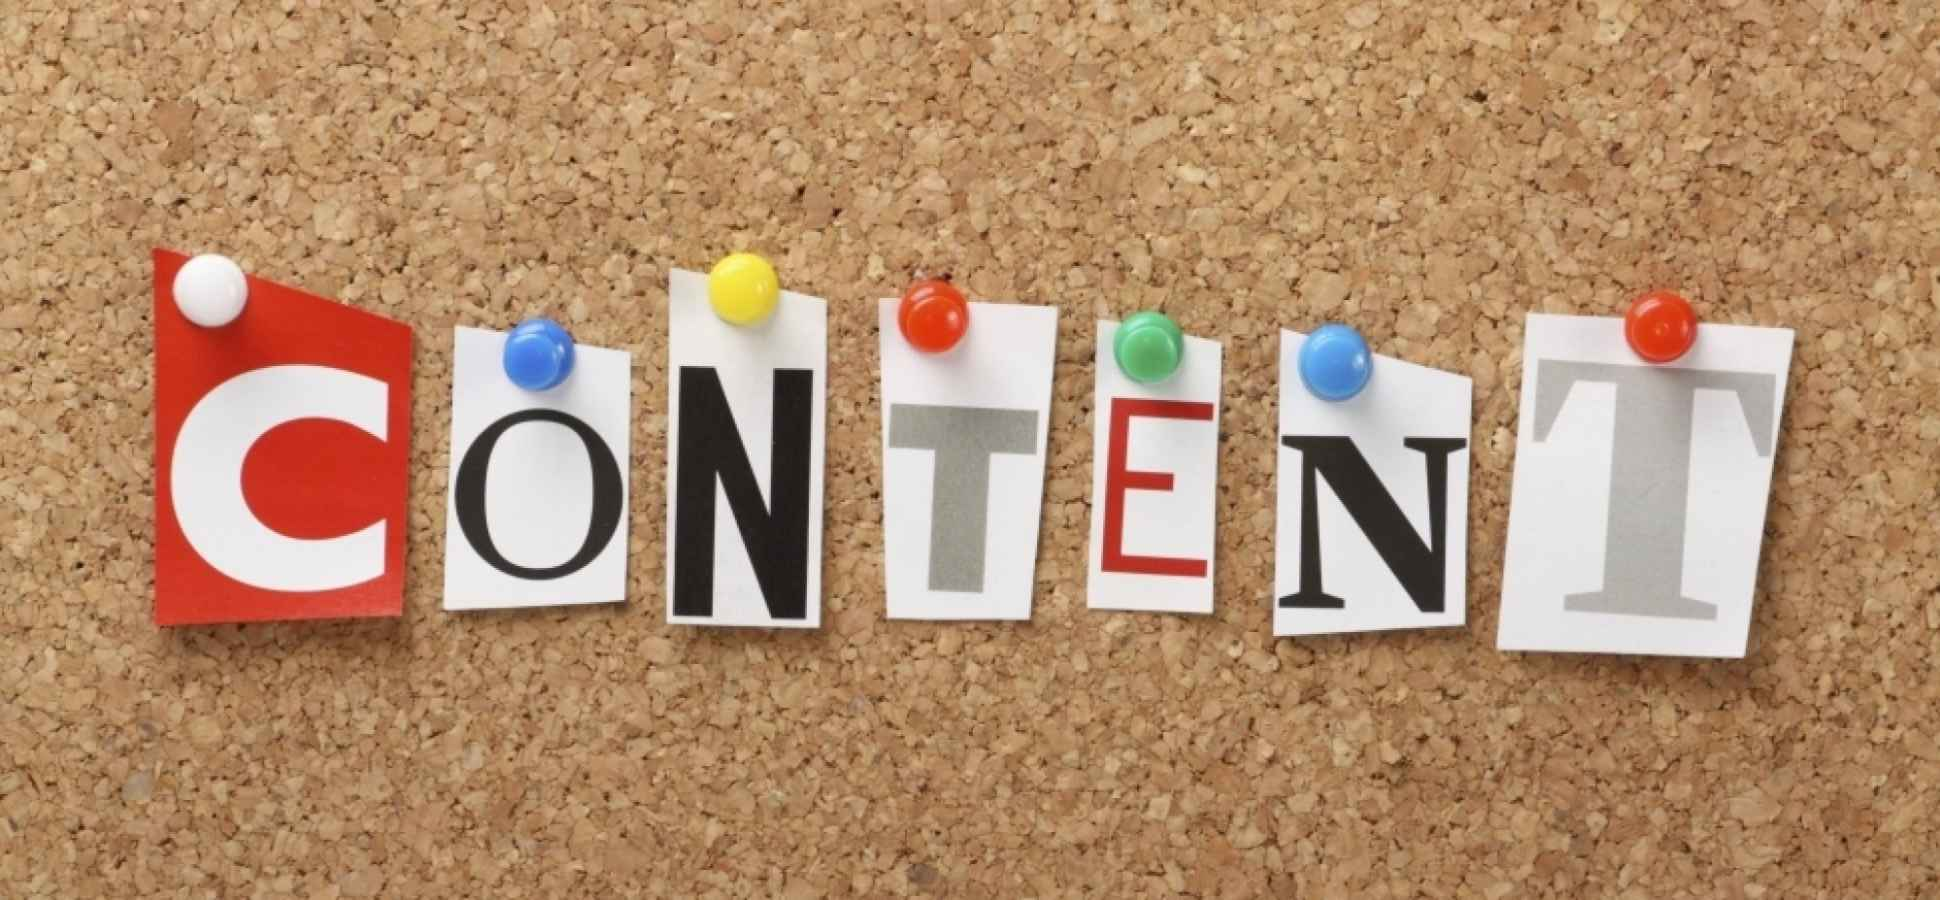 7 Content Marketing Tips to Get You Through the Week